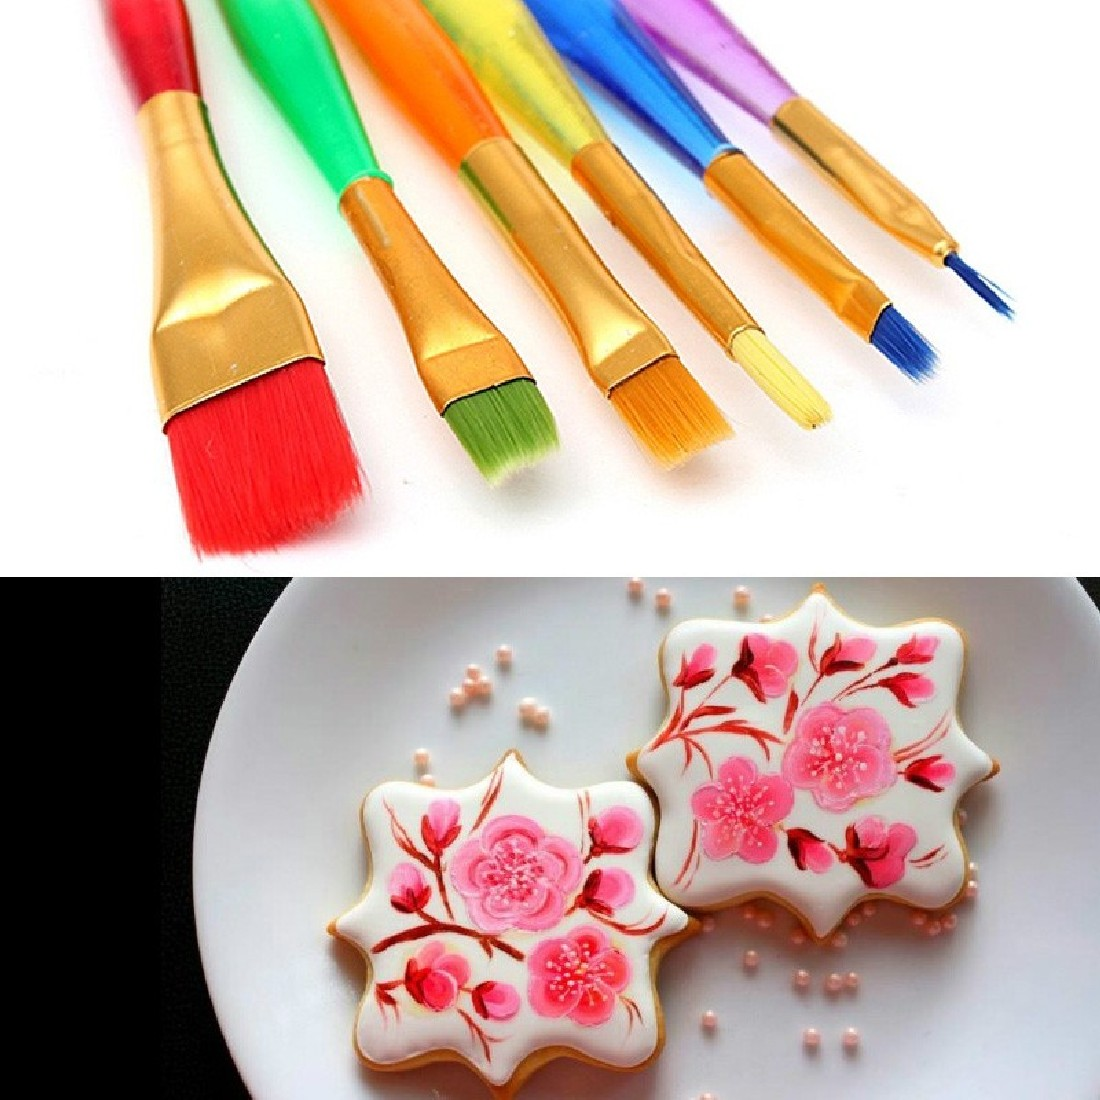 5pcs 15.5cm Tip Paint for DIY Clay Sculpture Shaping Carving Art Student Tools